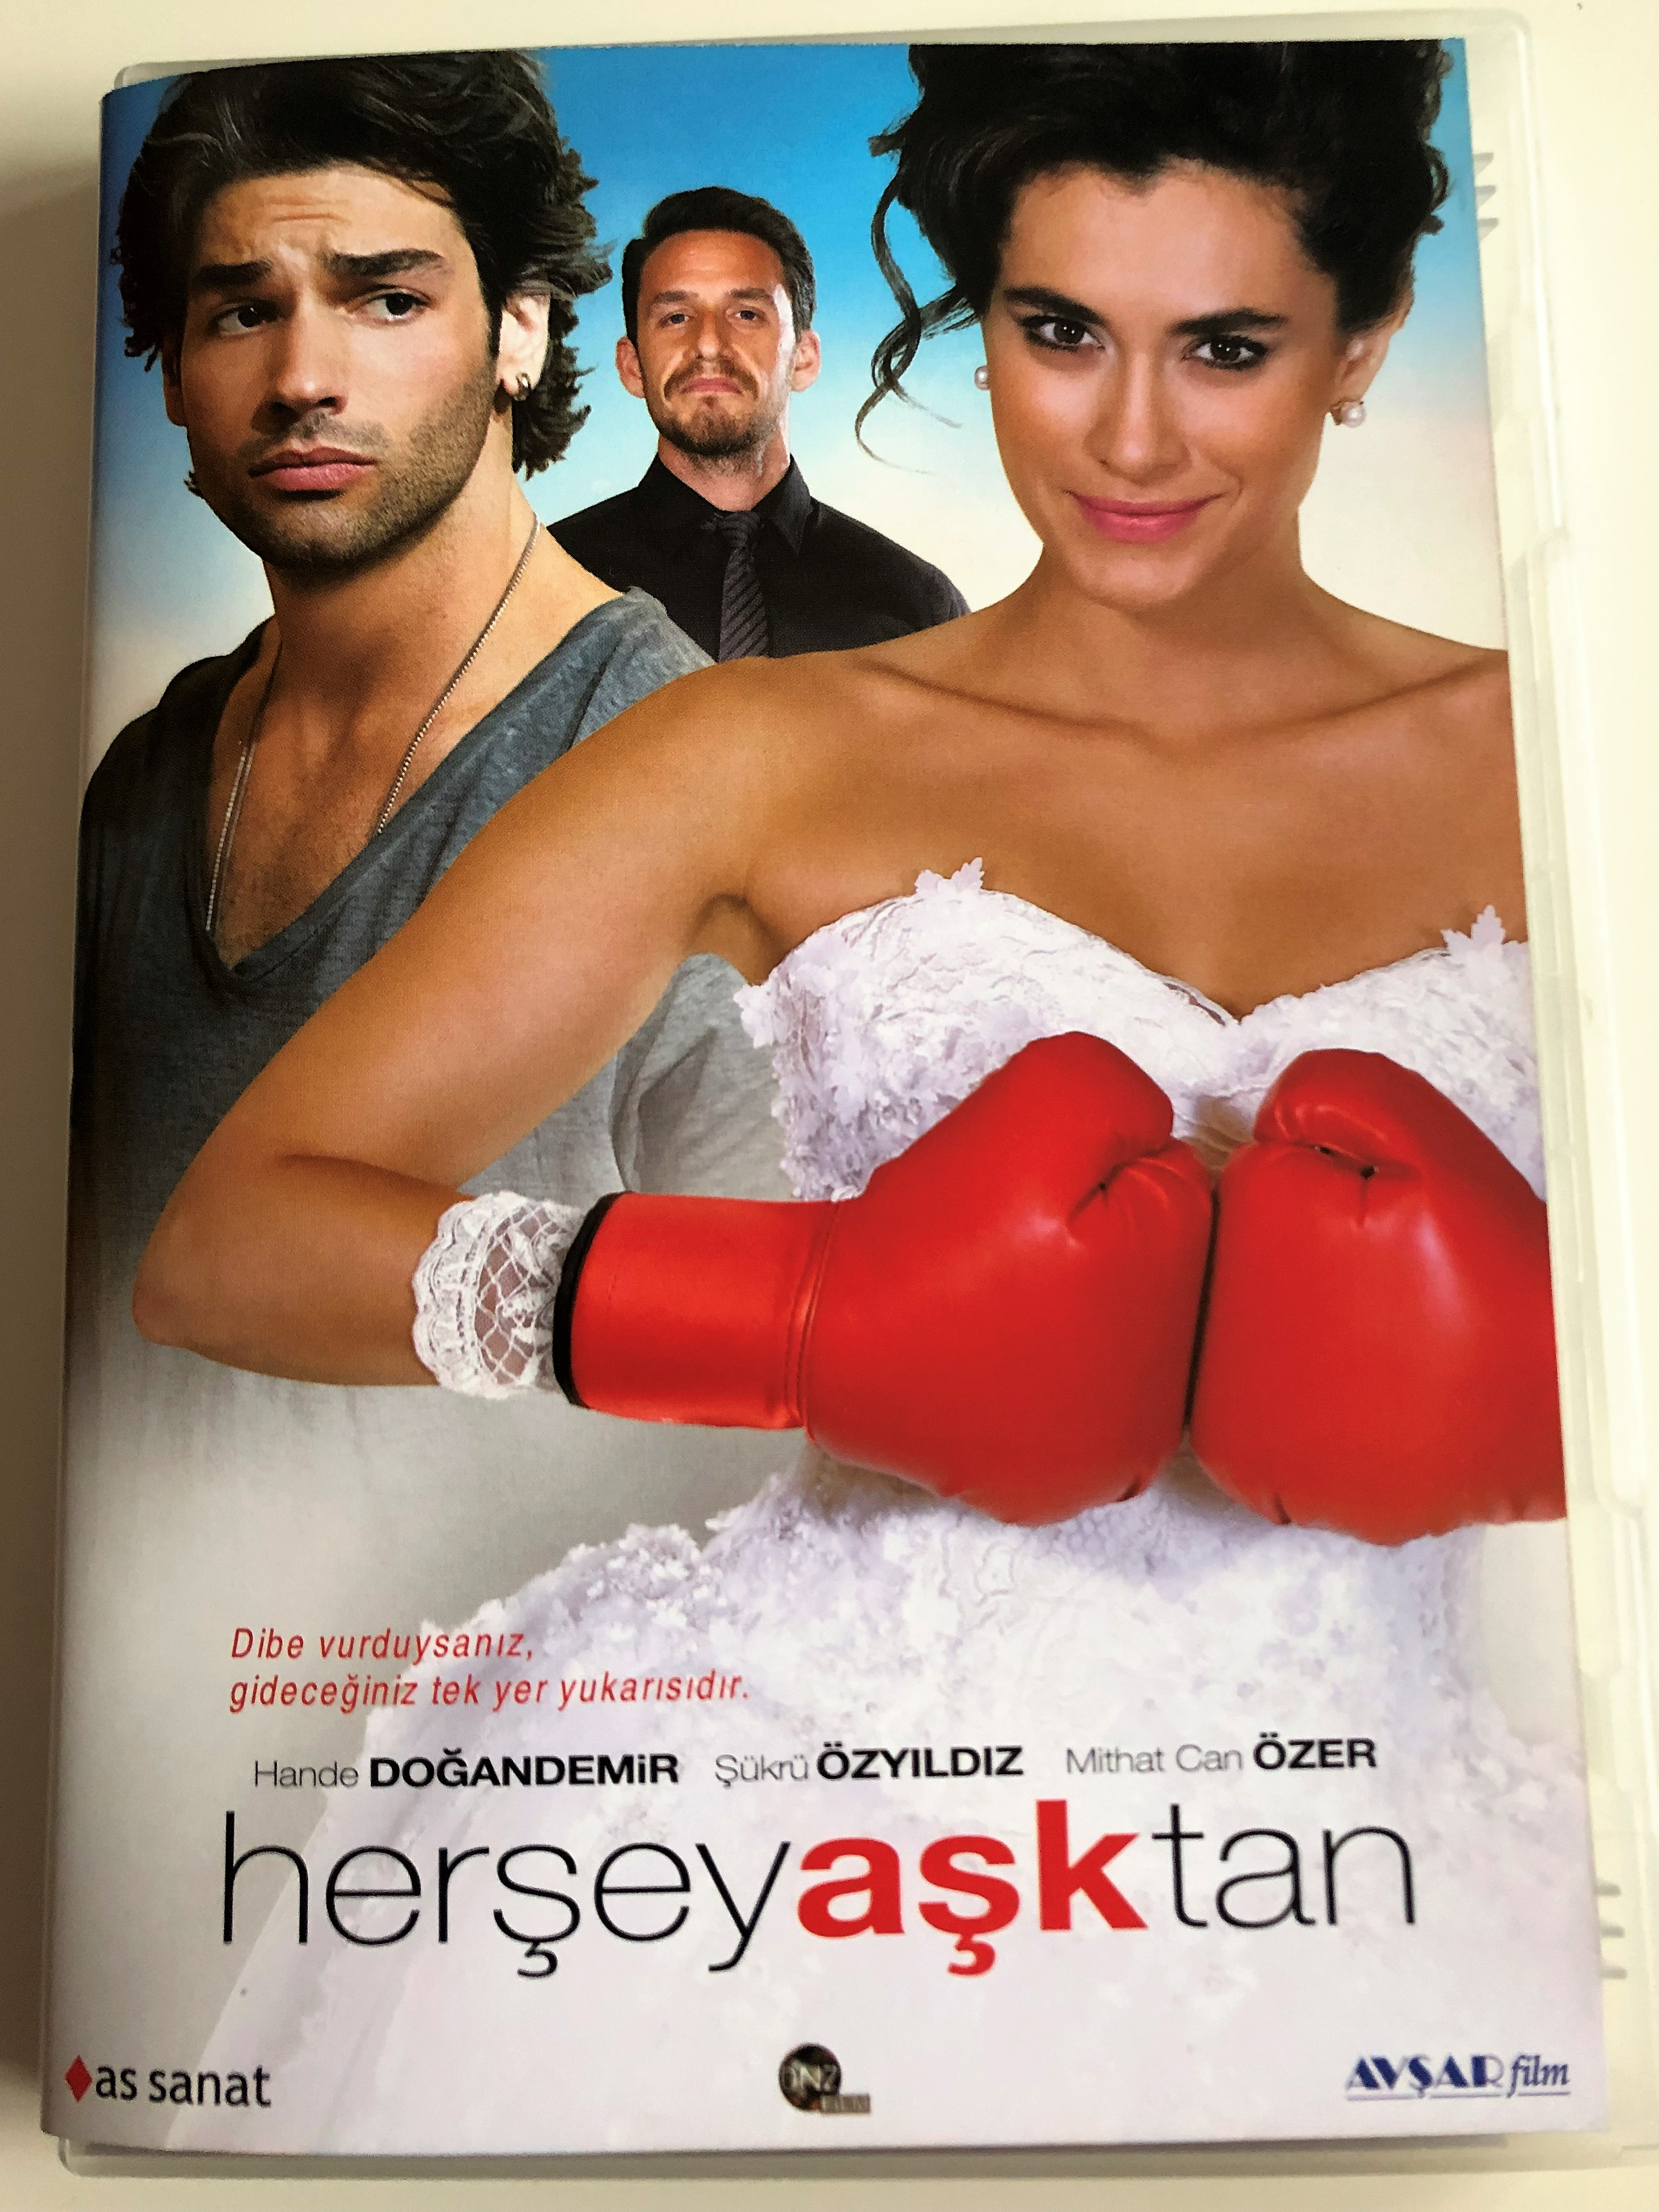 her-ey-a-ktan-dvd-2016-everything-is-love-directed-by-anda-haznedaro-lu-starring-hande-do-andemir-kr-zy-ld-z-mithat-can-zer-1-.jpg